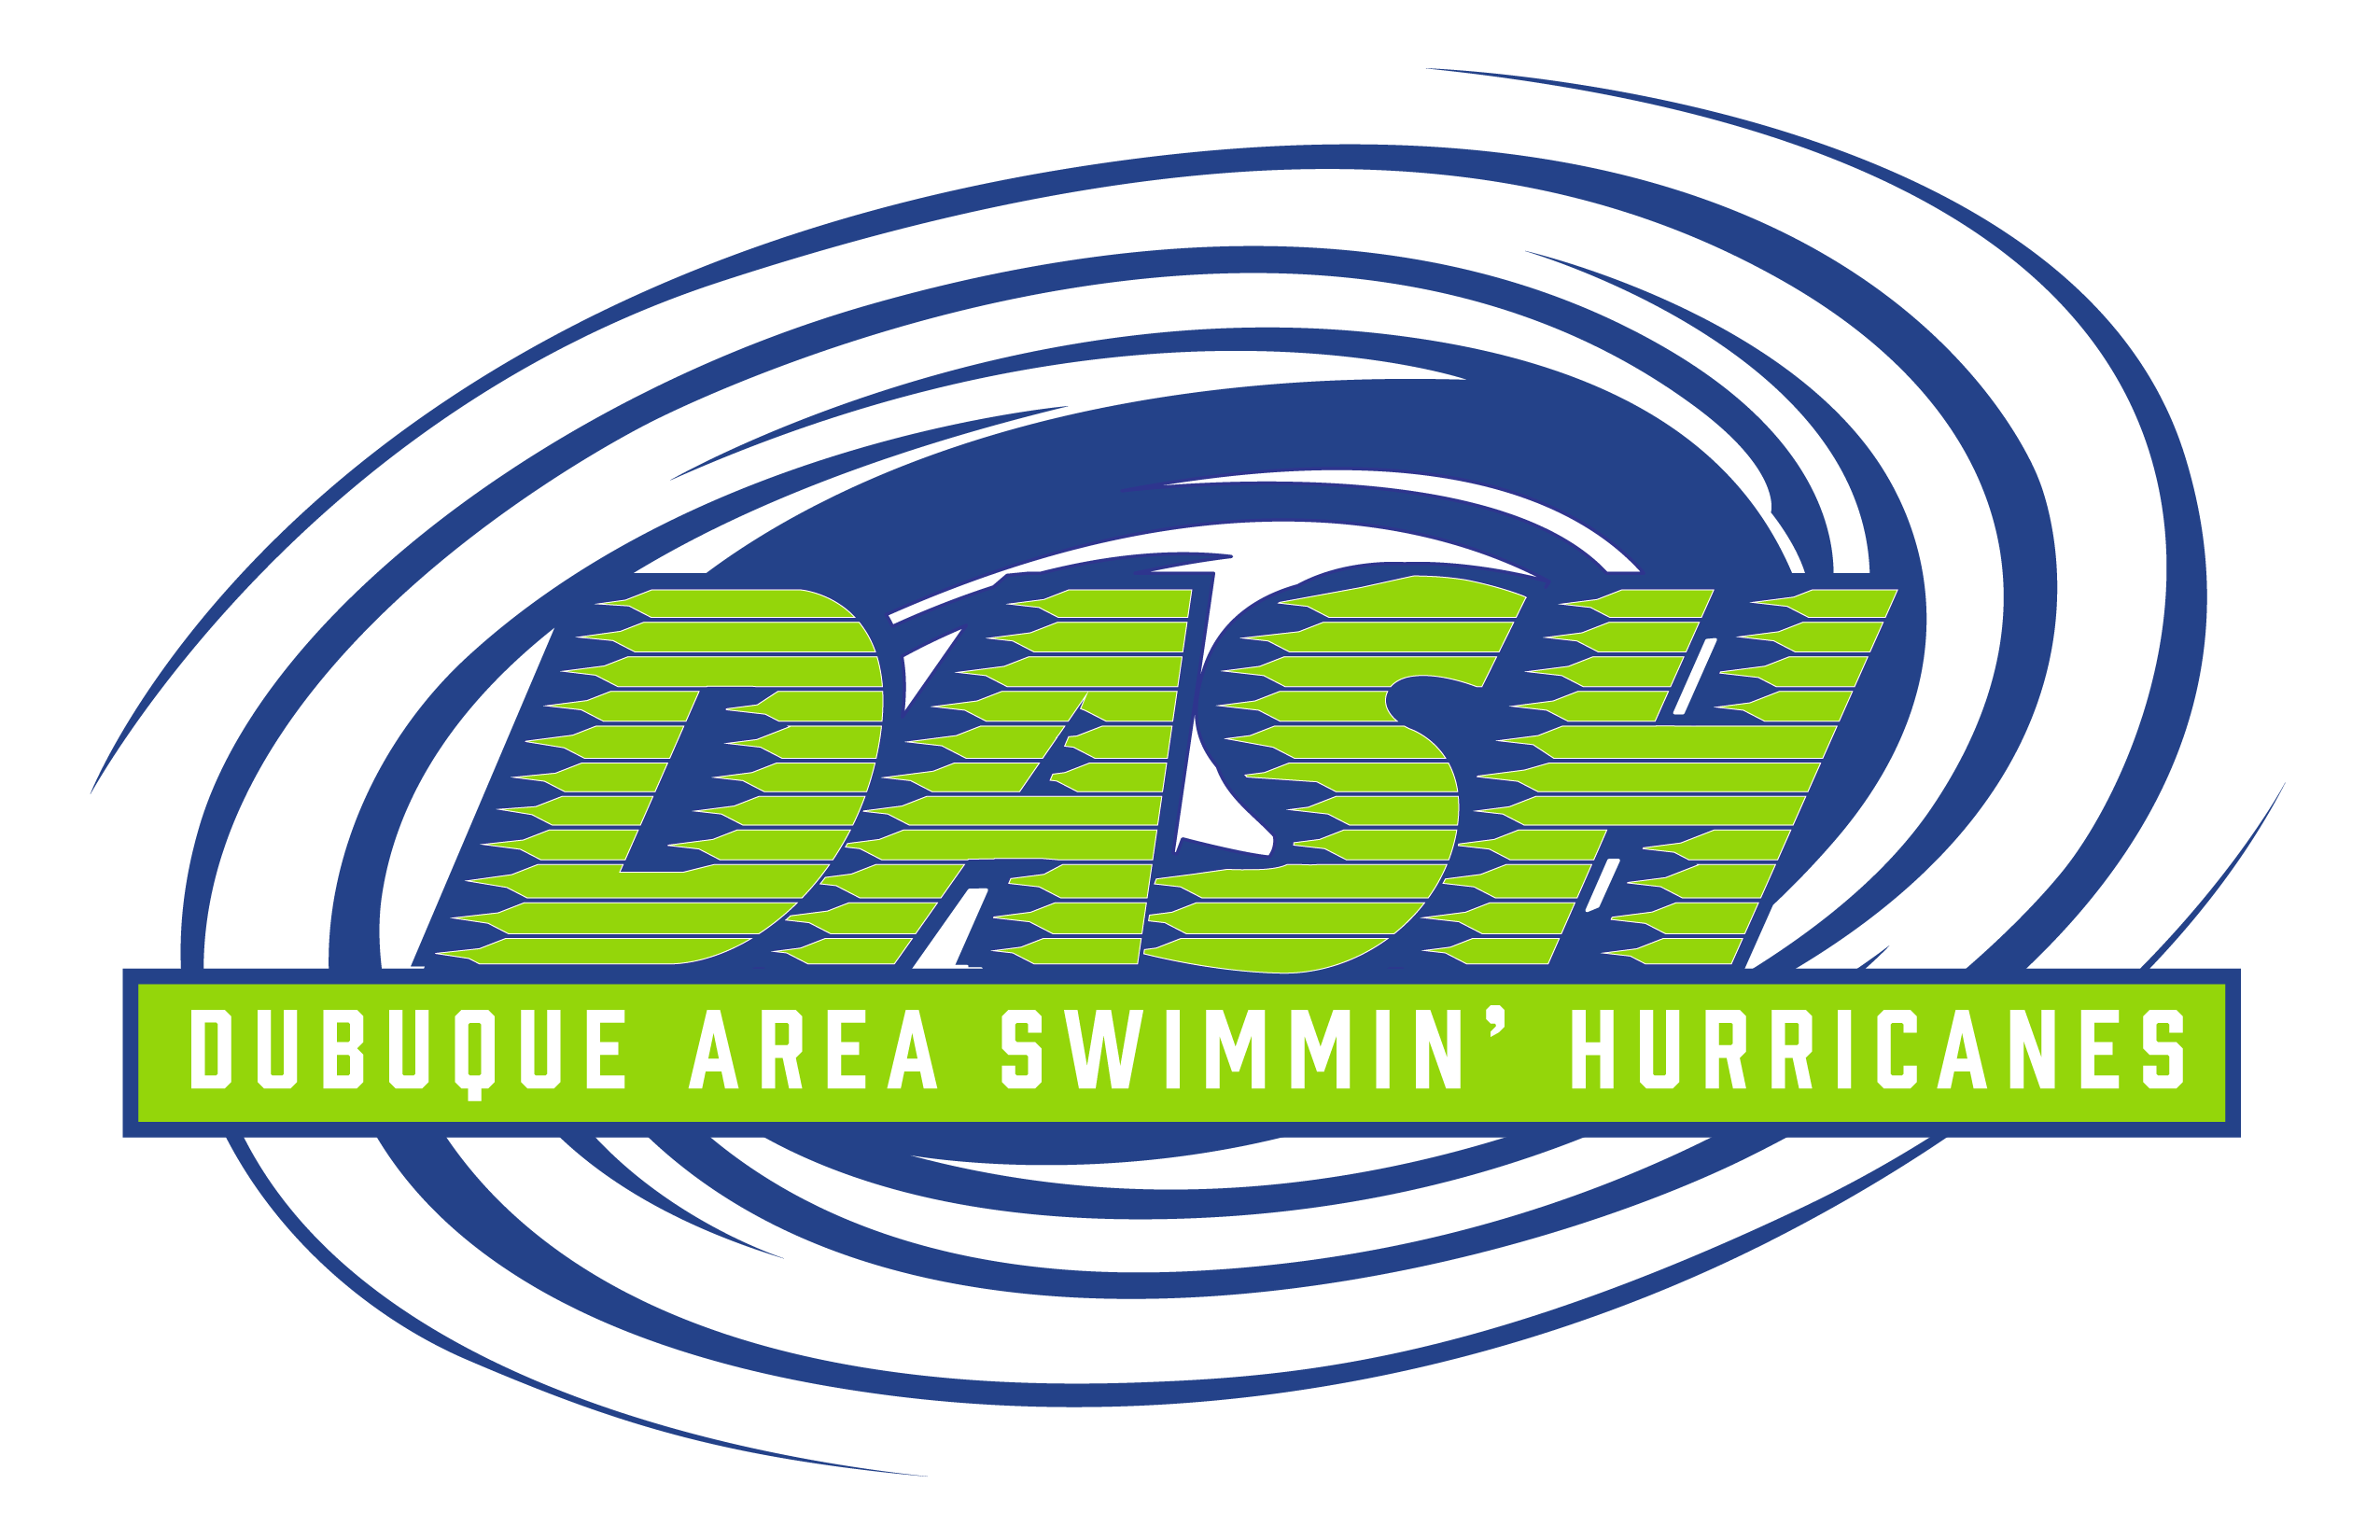 Dubuque Area Swimmin' Hurricanes